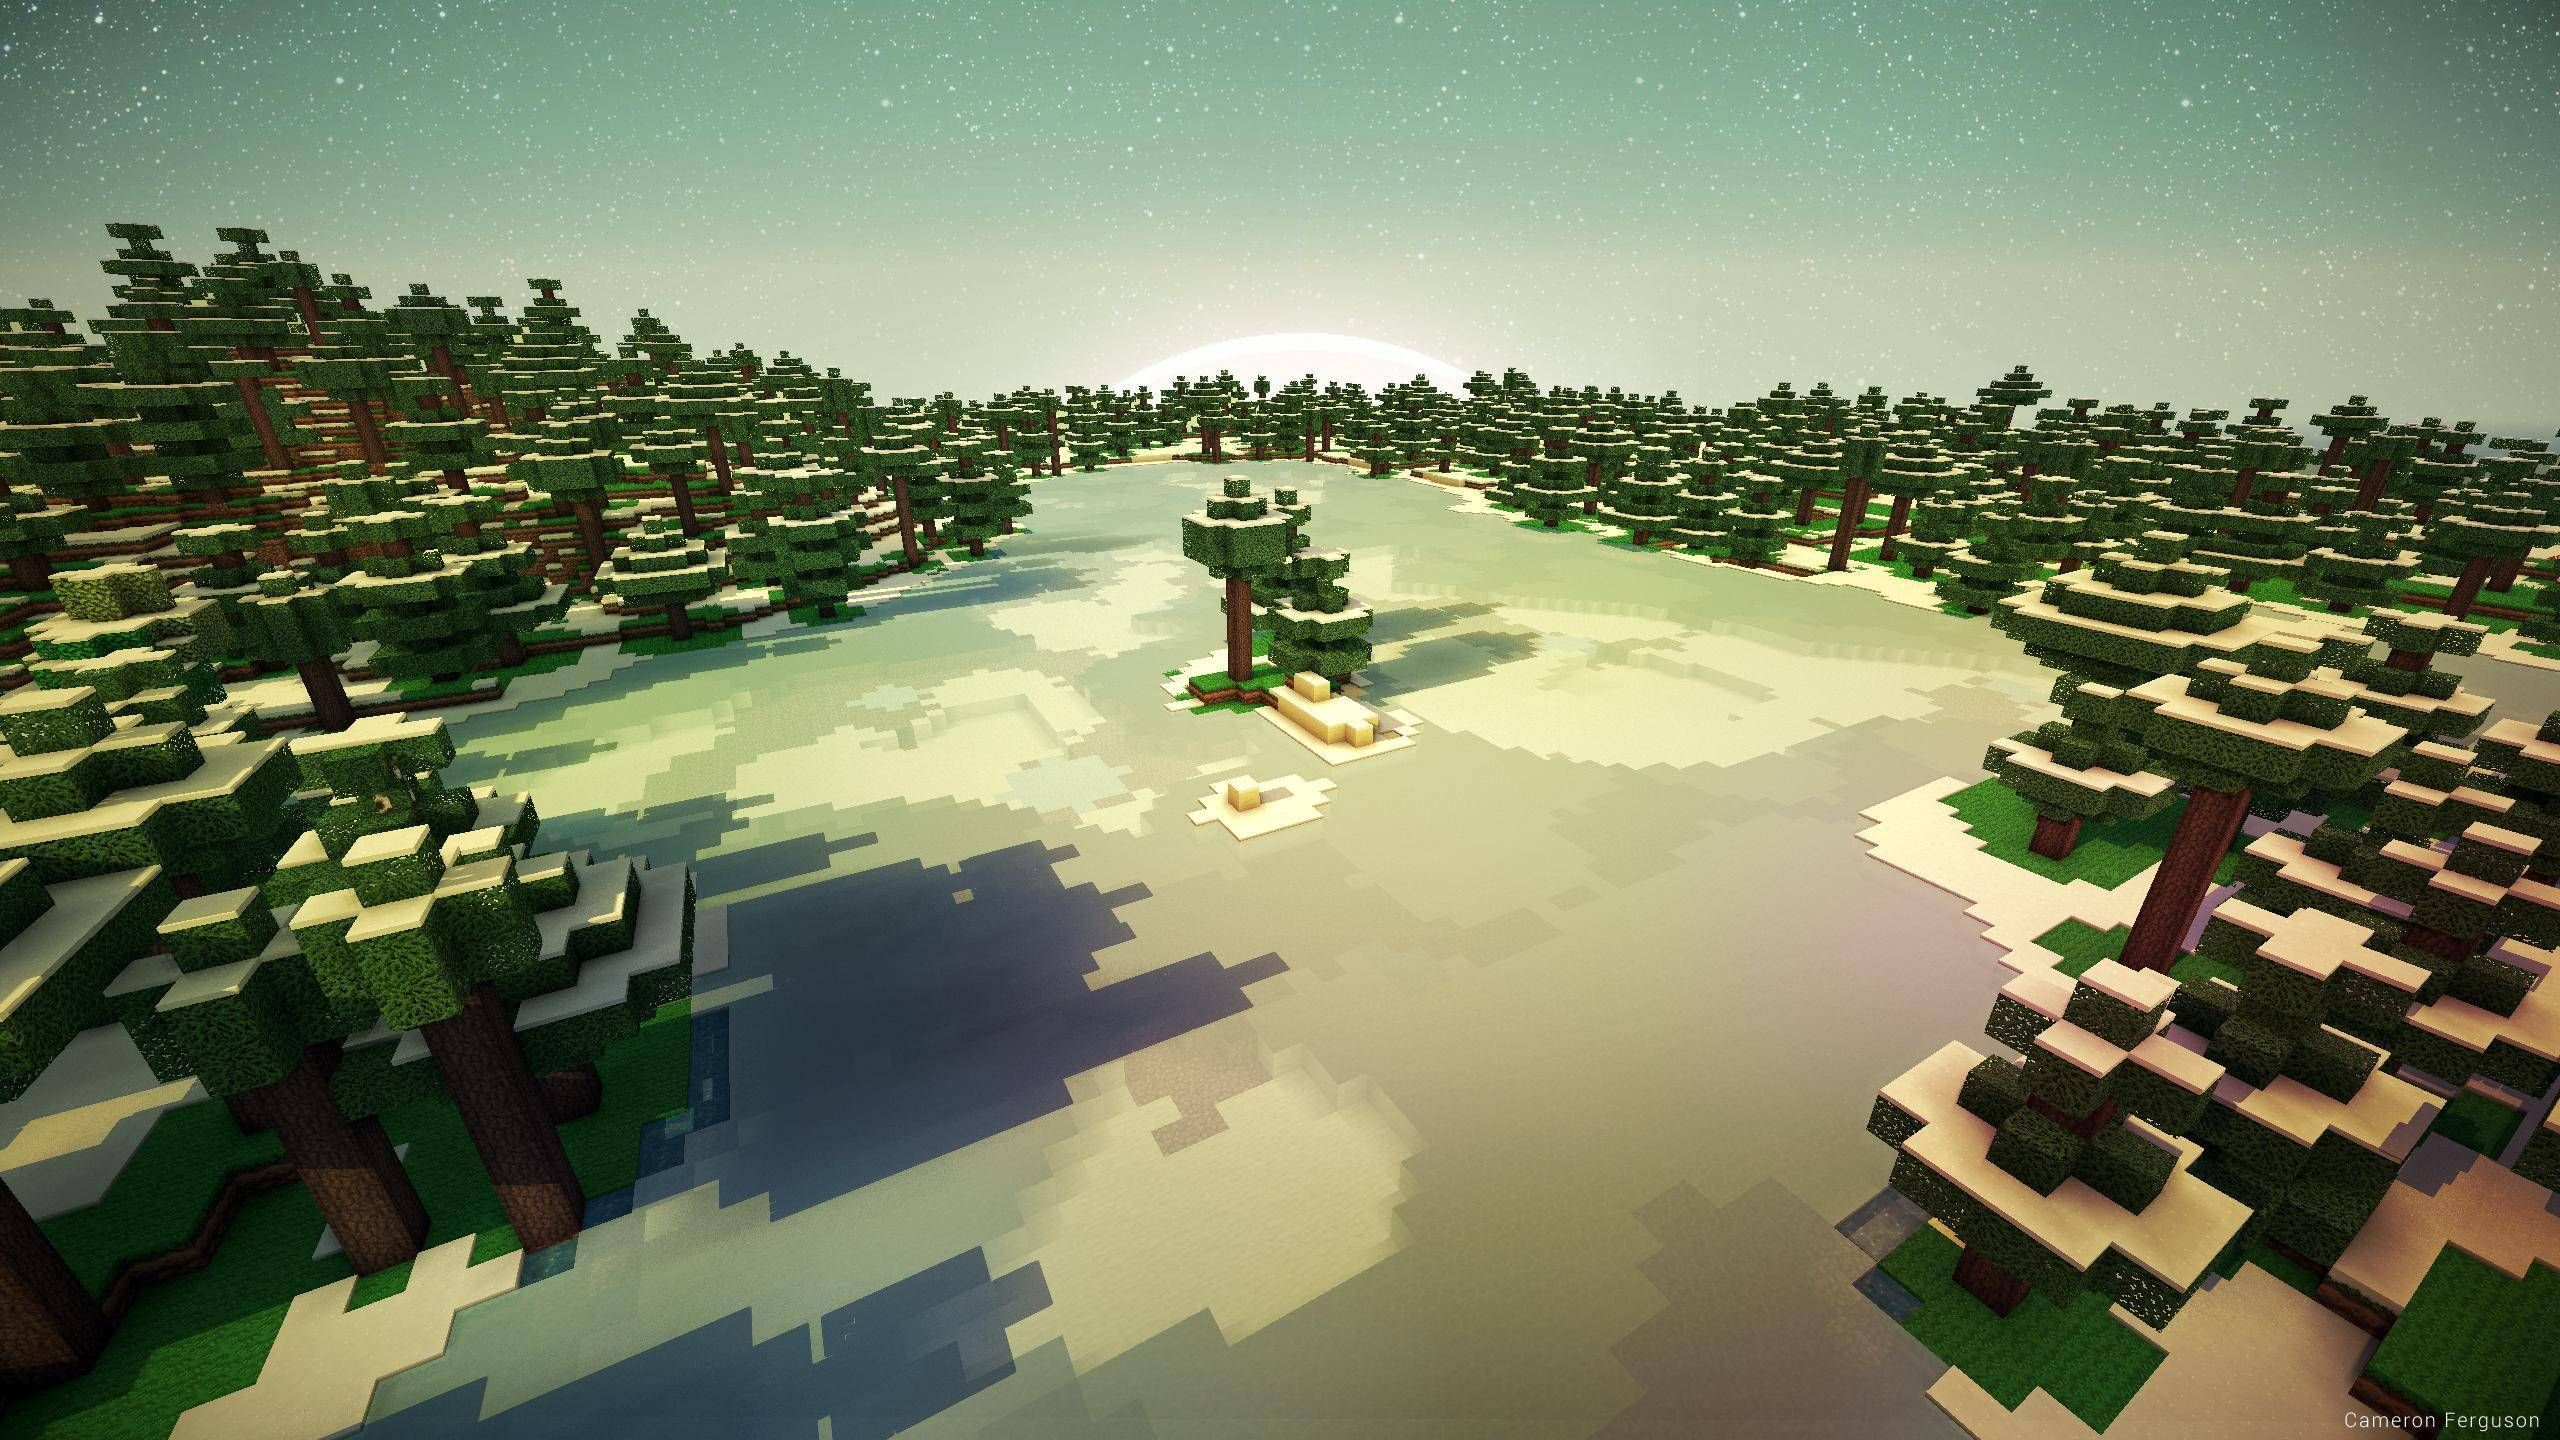 Beautiful Wallpaper Minecraft Plain - 54ed7723158edf05a3363ae2bbdd3142  Snapshot_274156.jpg